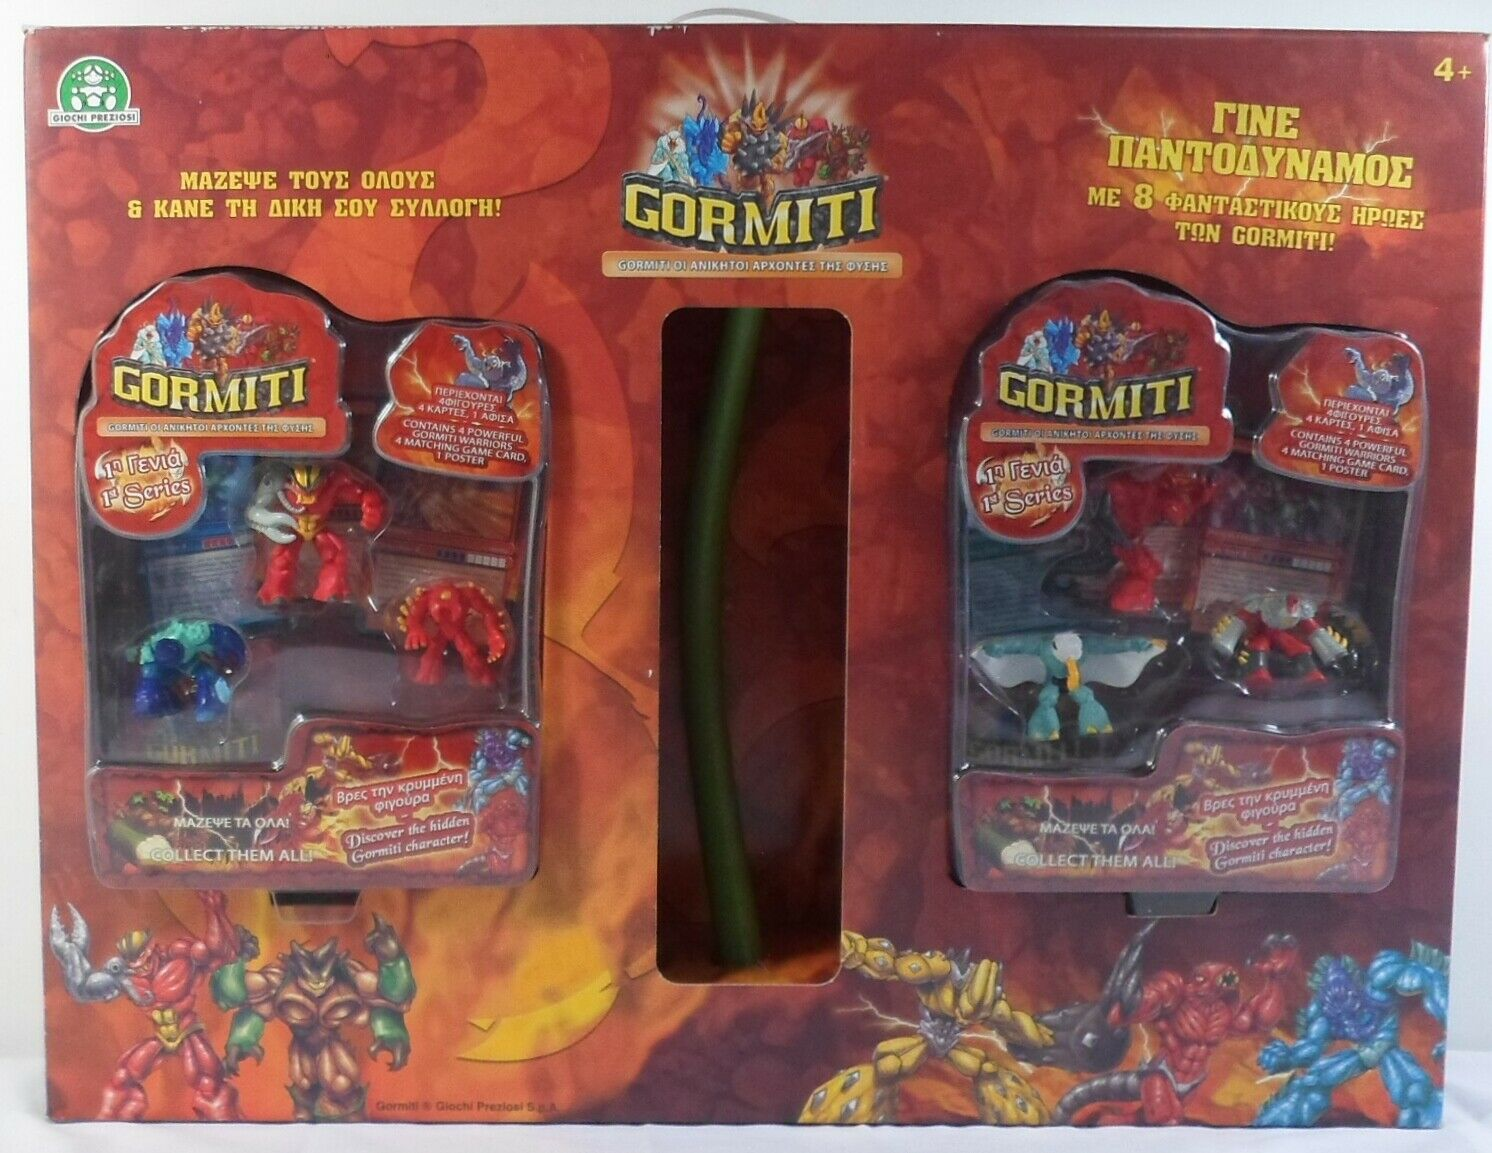 GORMITI 2007 2007 2007 EASTER CANDLE BOX w  2 x GORMITI SERIES 1 CARDS 8 FIGURES + CANDLE a3155c